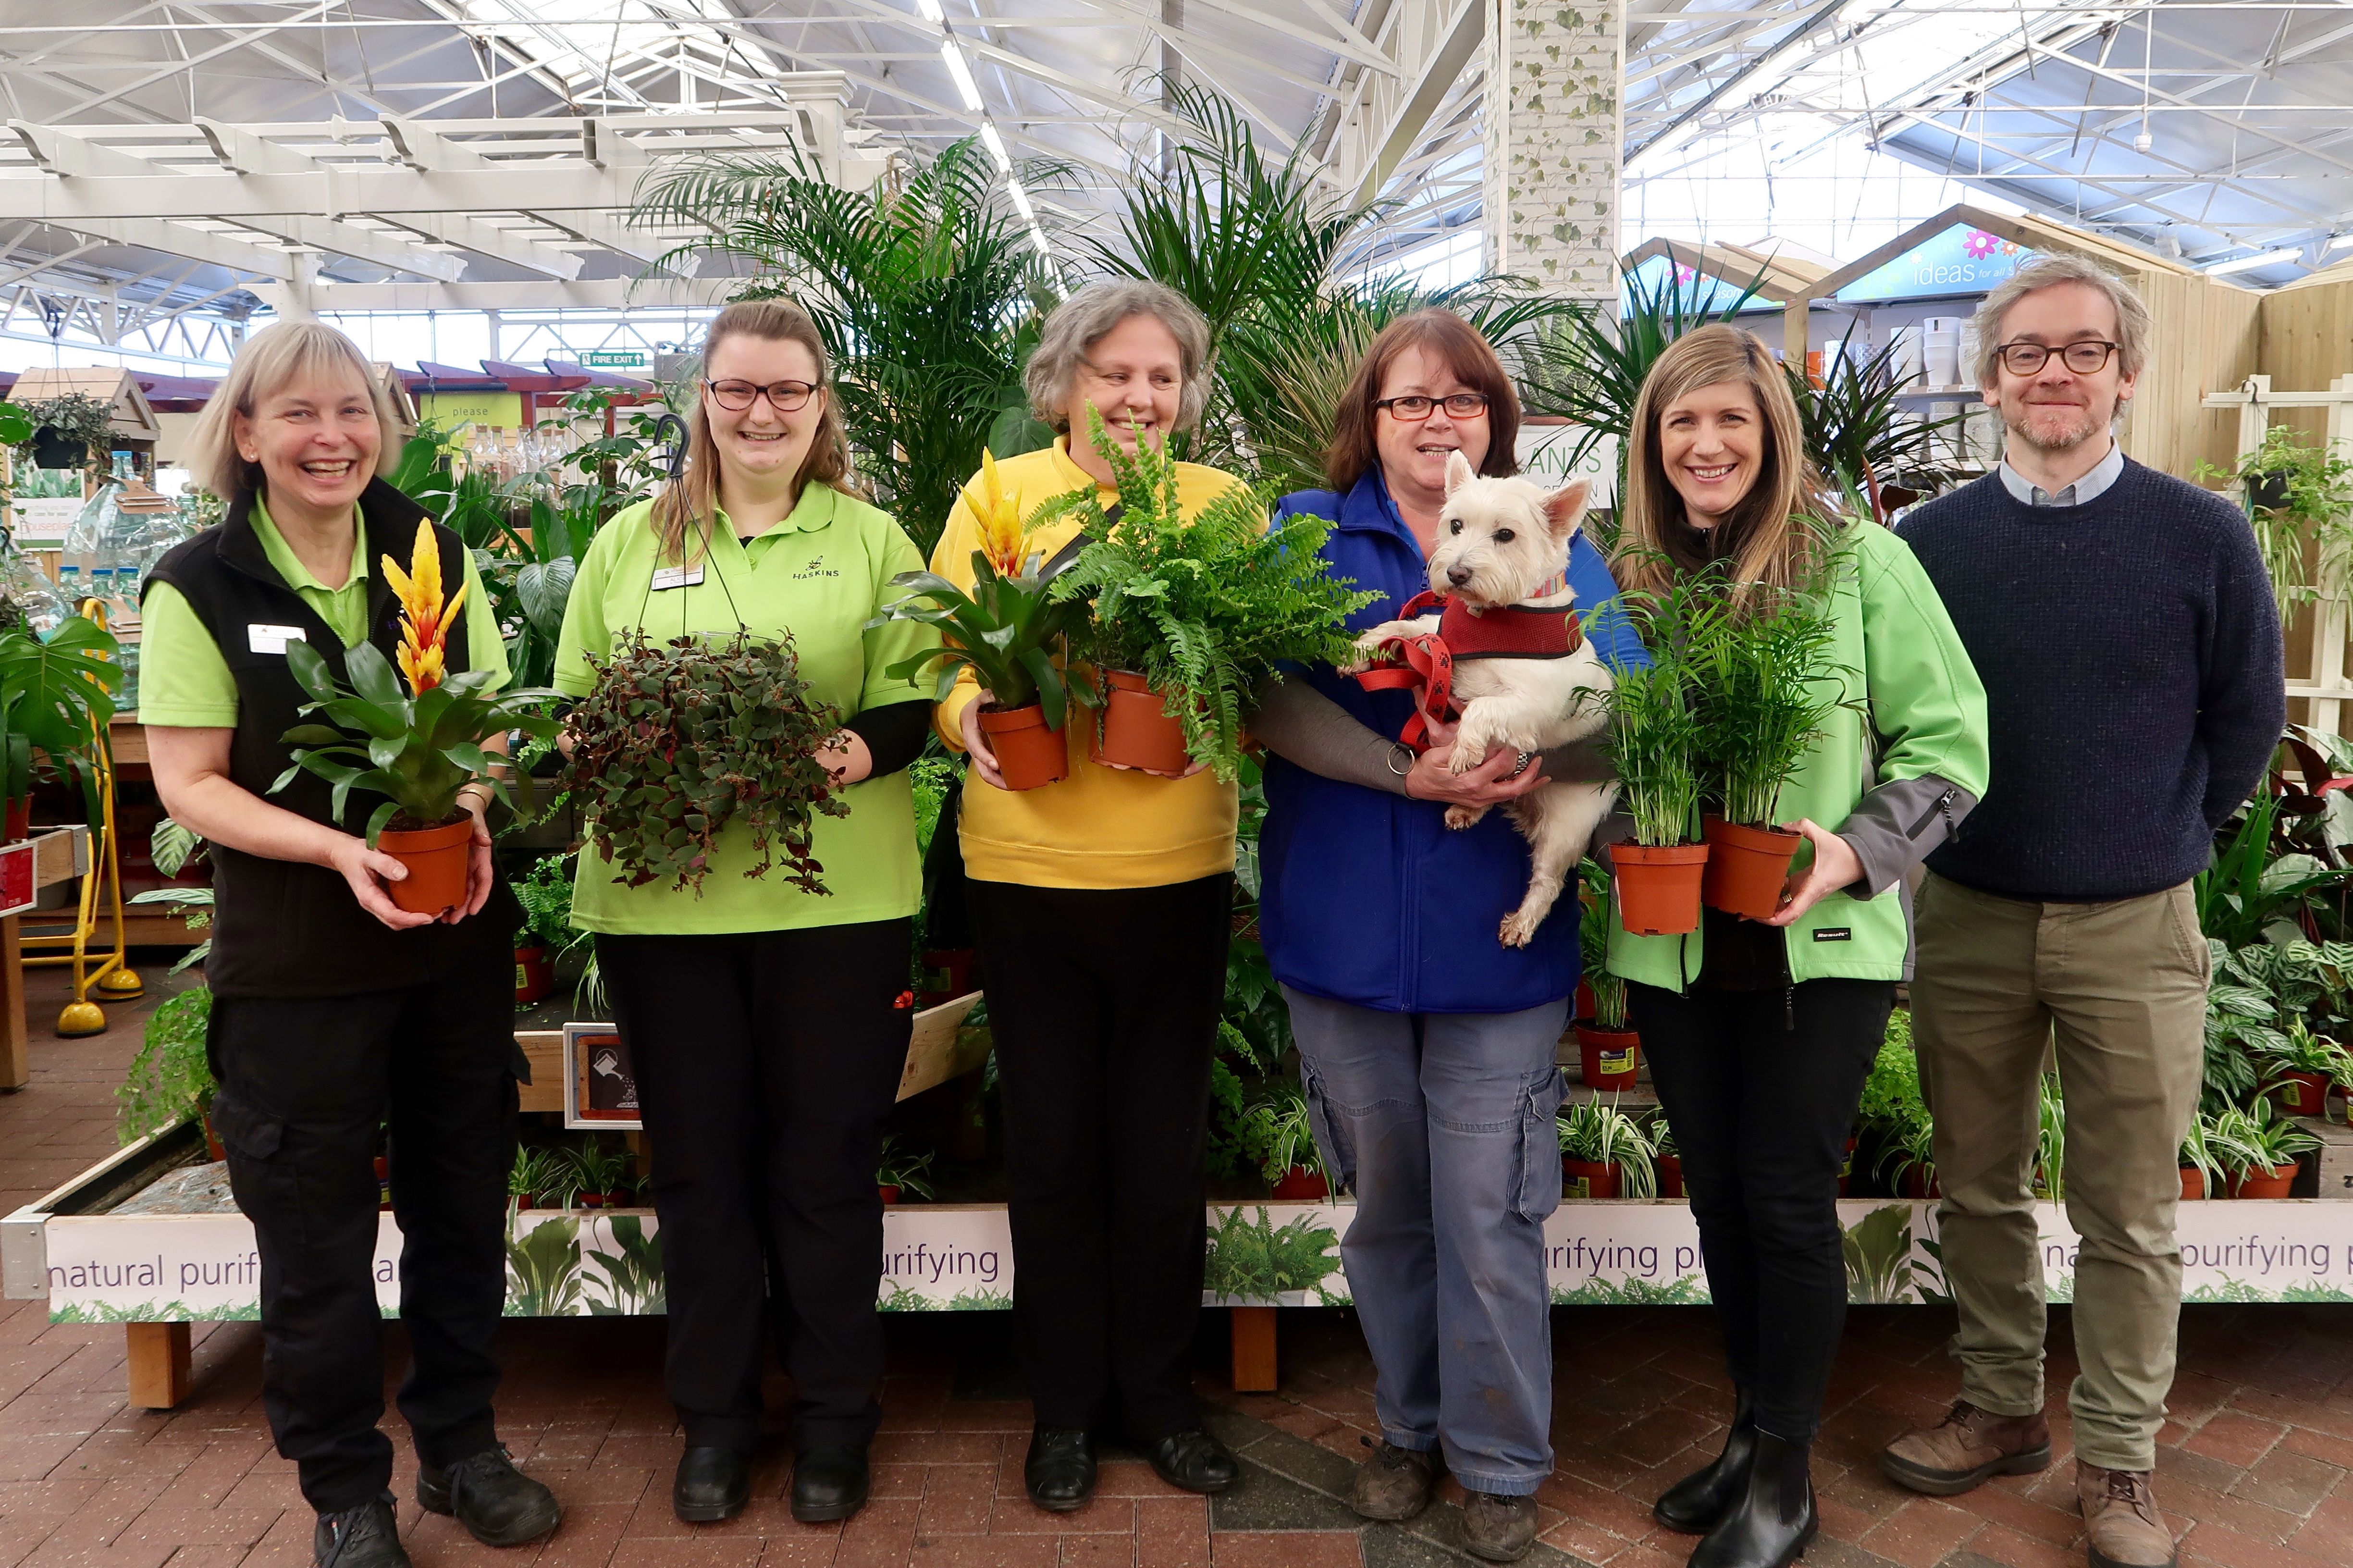 Haskins Garden Centre in Ferndown partners with Waggy Tails Rescue to donate houseplants